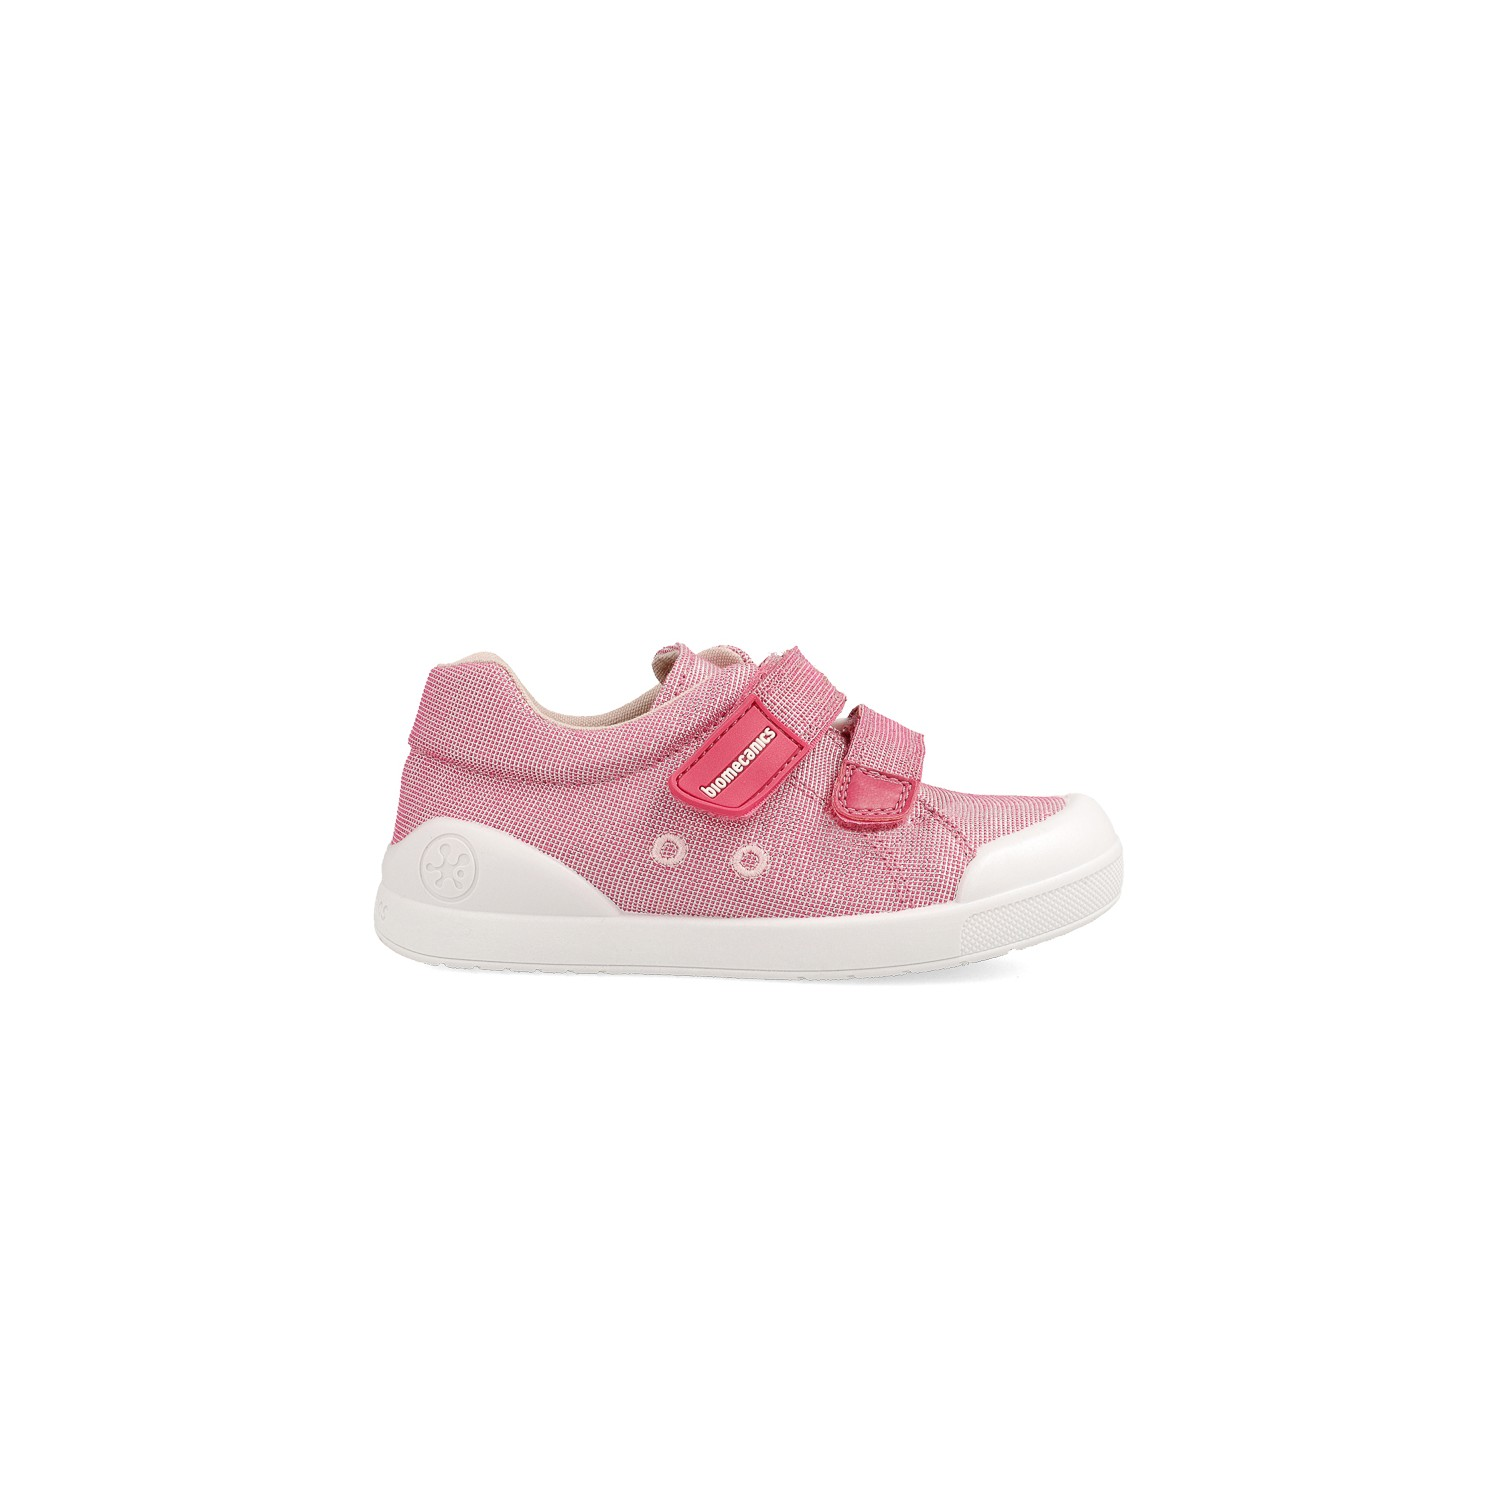 Canvas sneakers for girl Moira